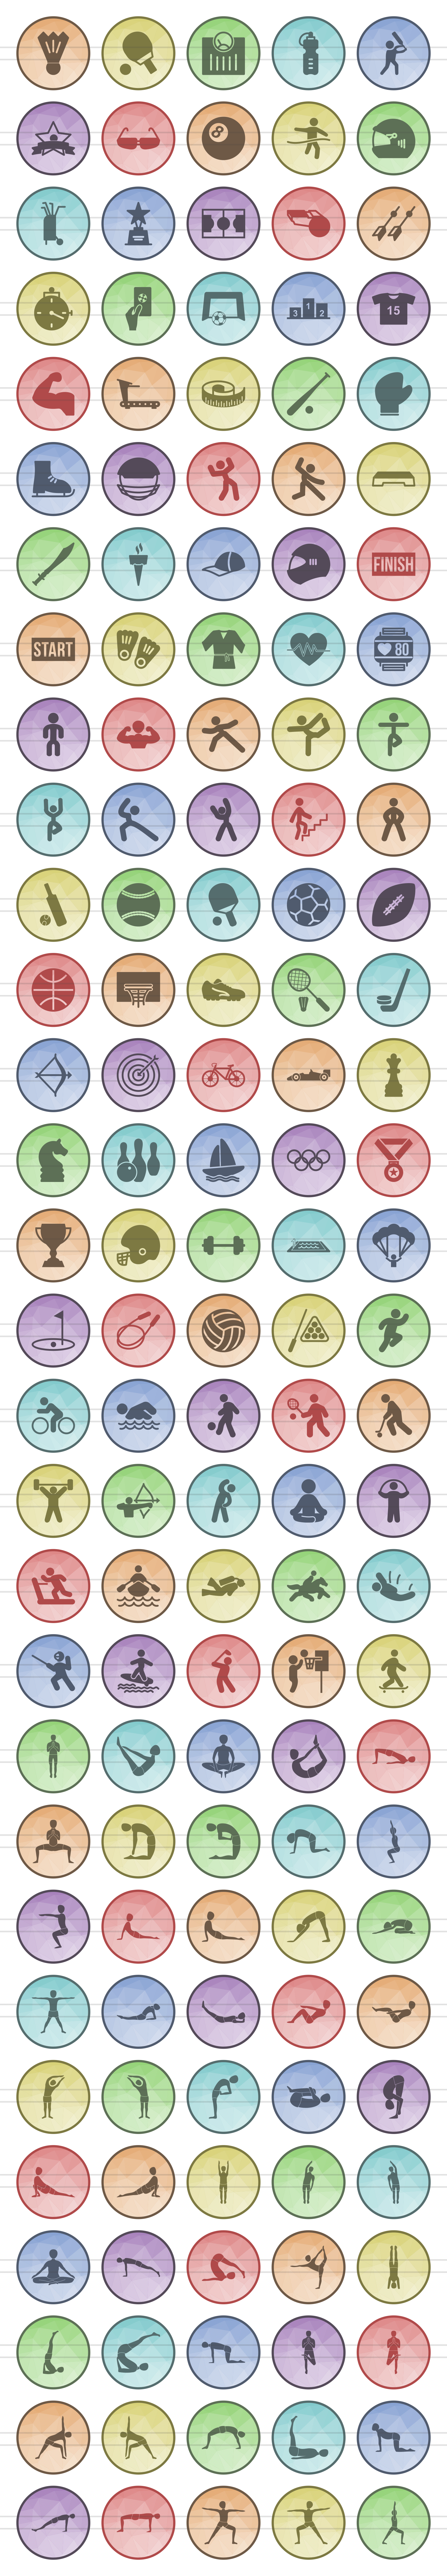 150 Fitness & Sports Filled Low Poly Icons example image 2